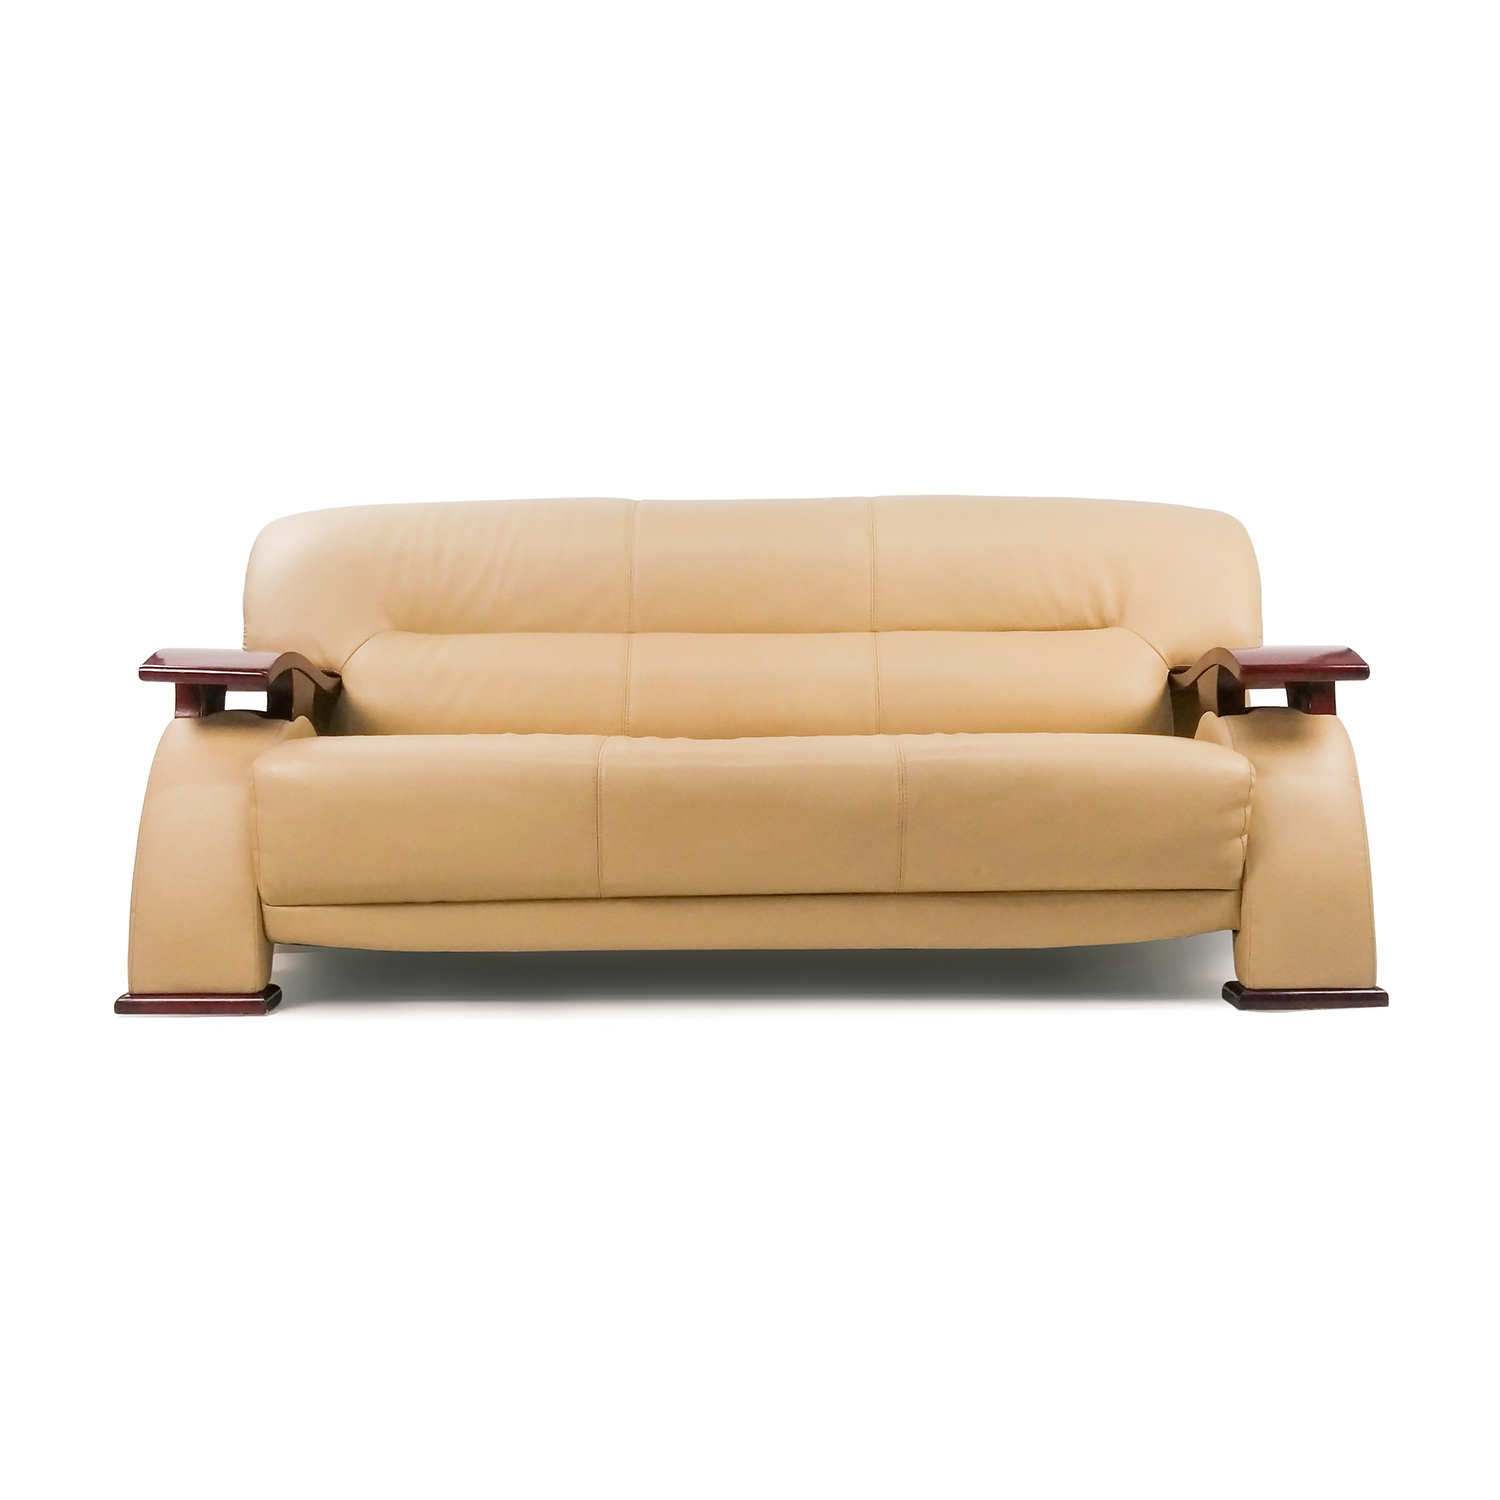 contemporary leather sofa top bed mattress 84 off unknown brand beige